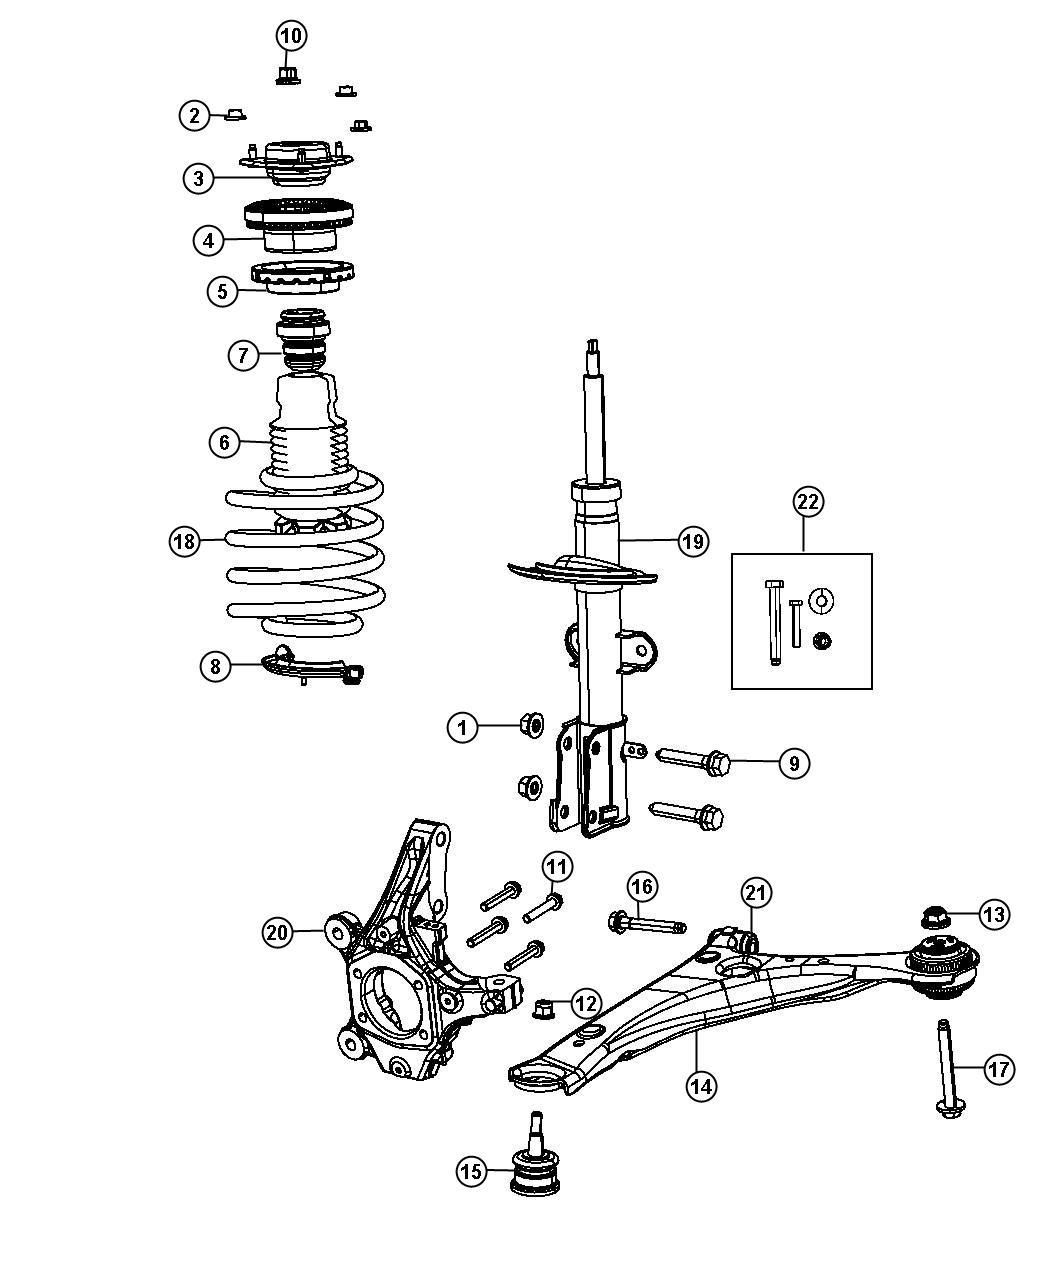 95 saturn cooling system diagram  saturn  auto wiring diagram